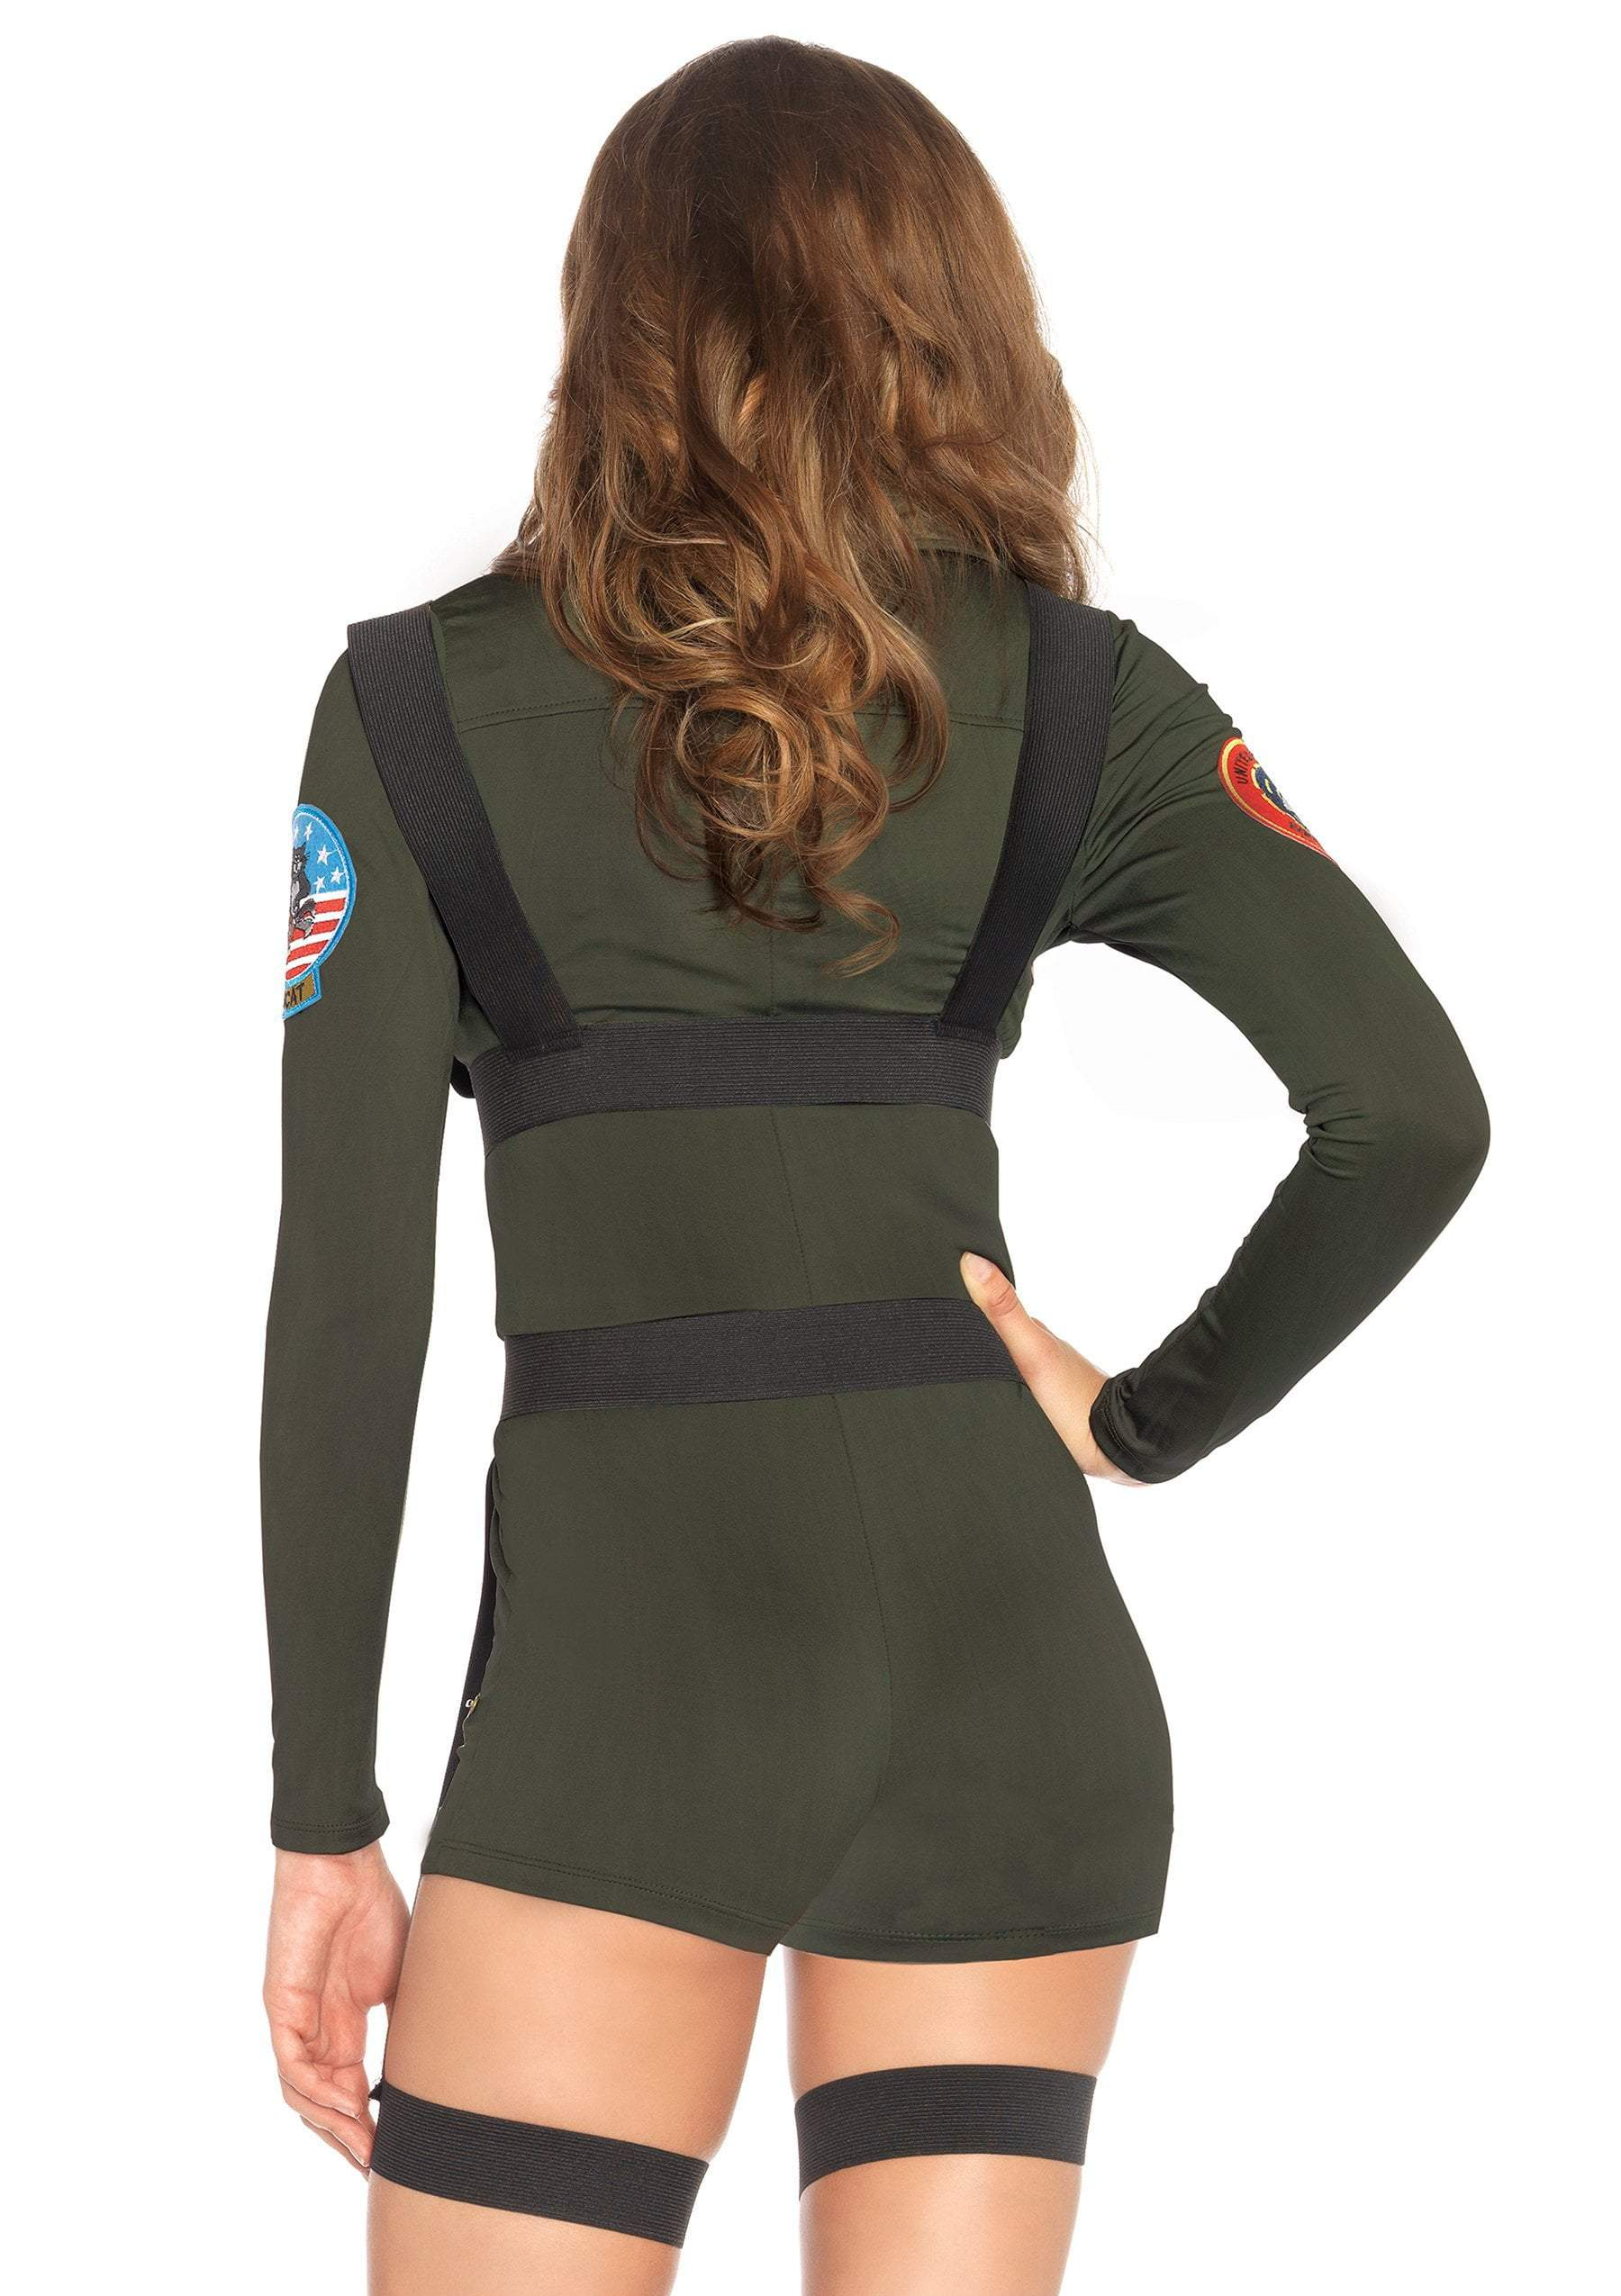 Leg Avenue costumes Top Gun Romper Costume